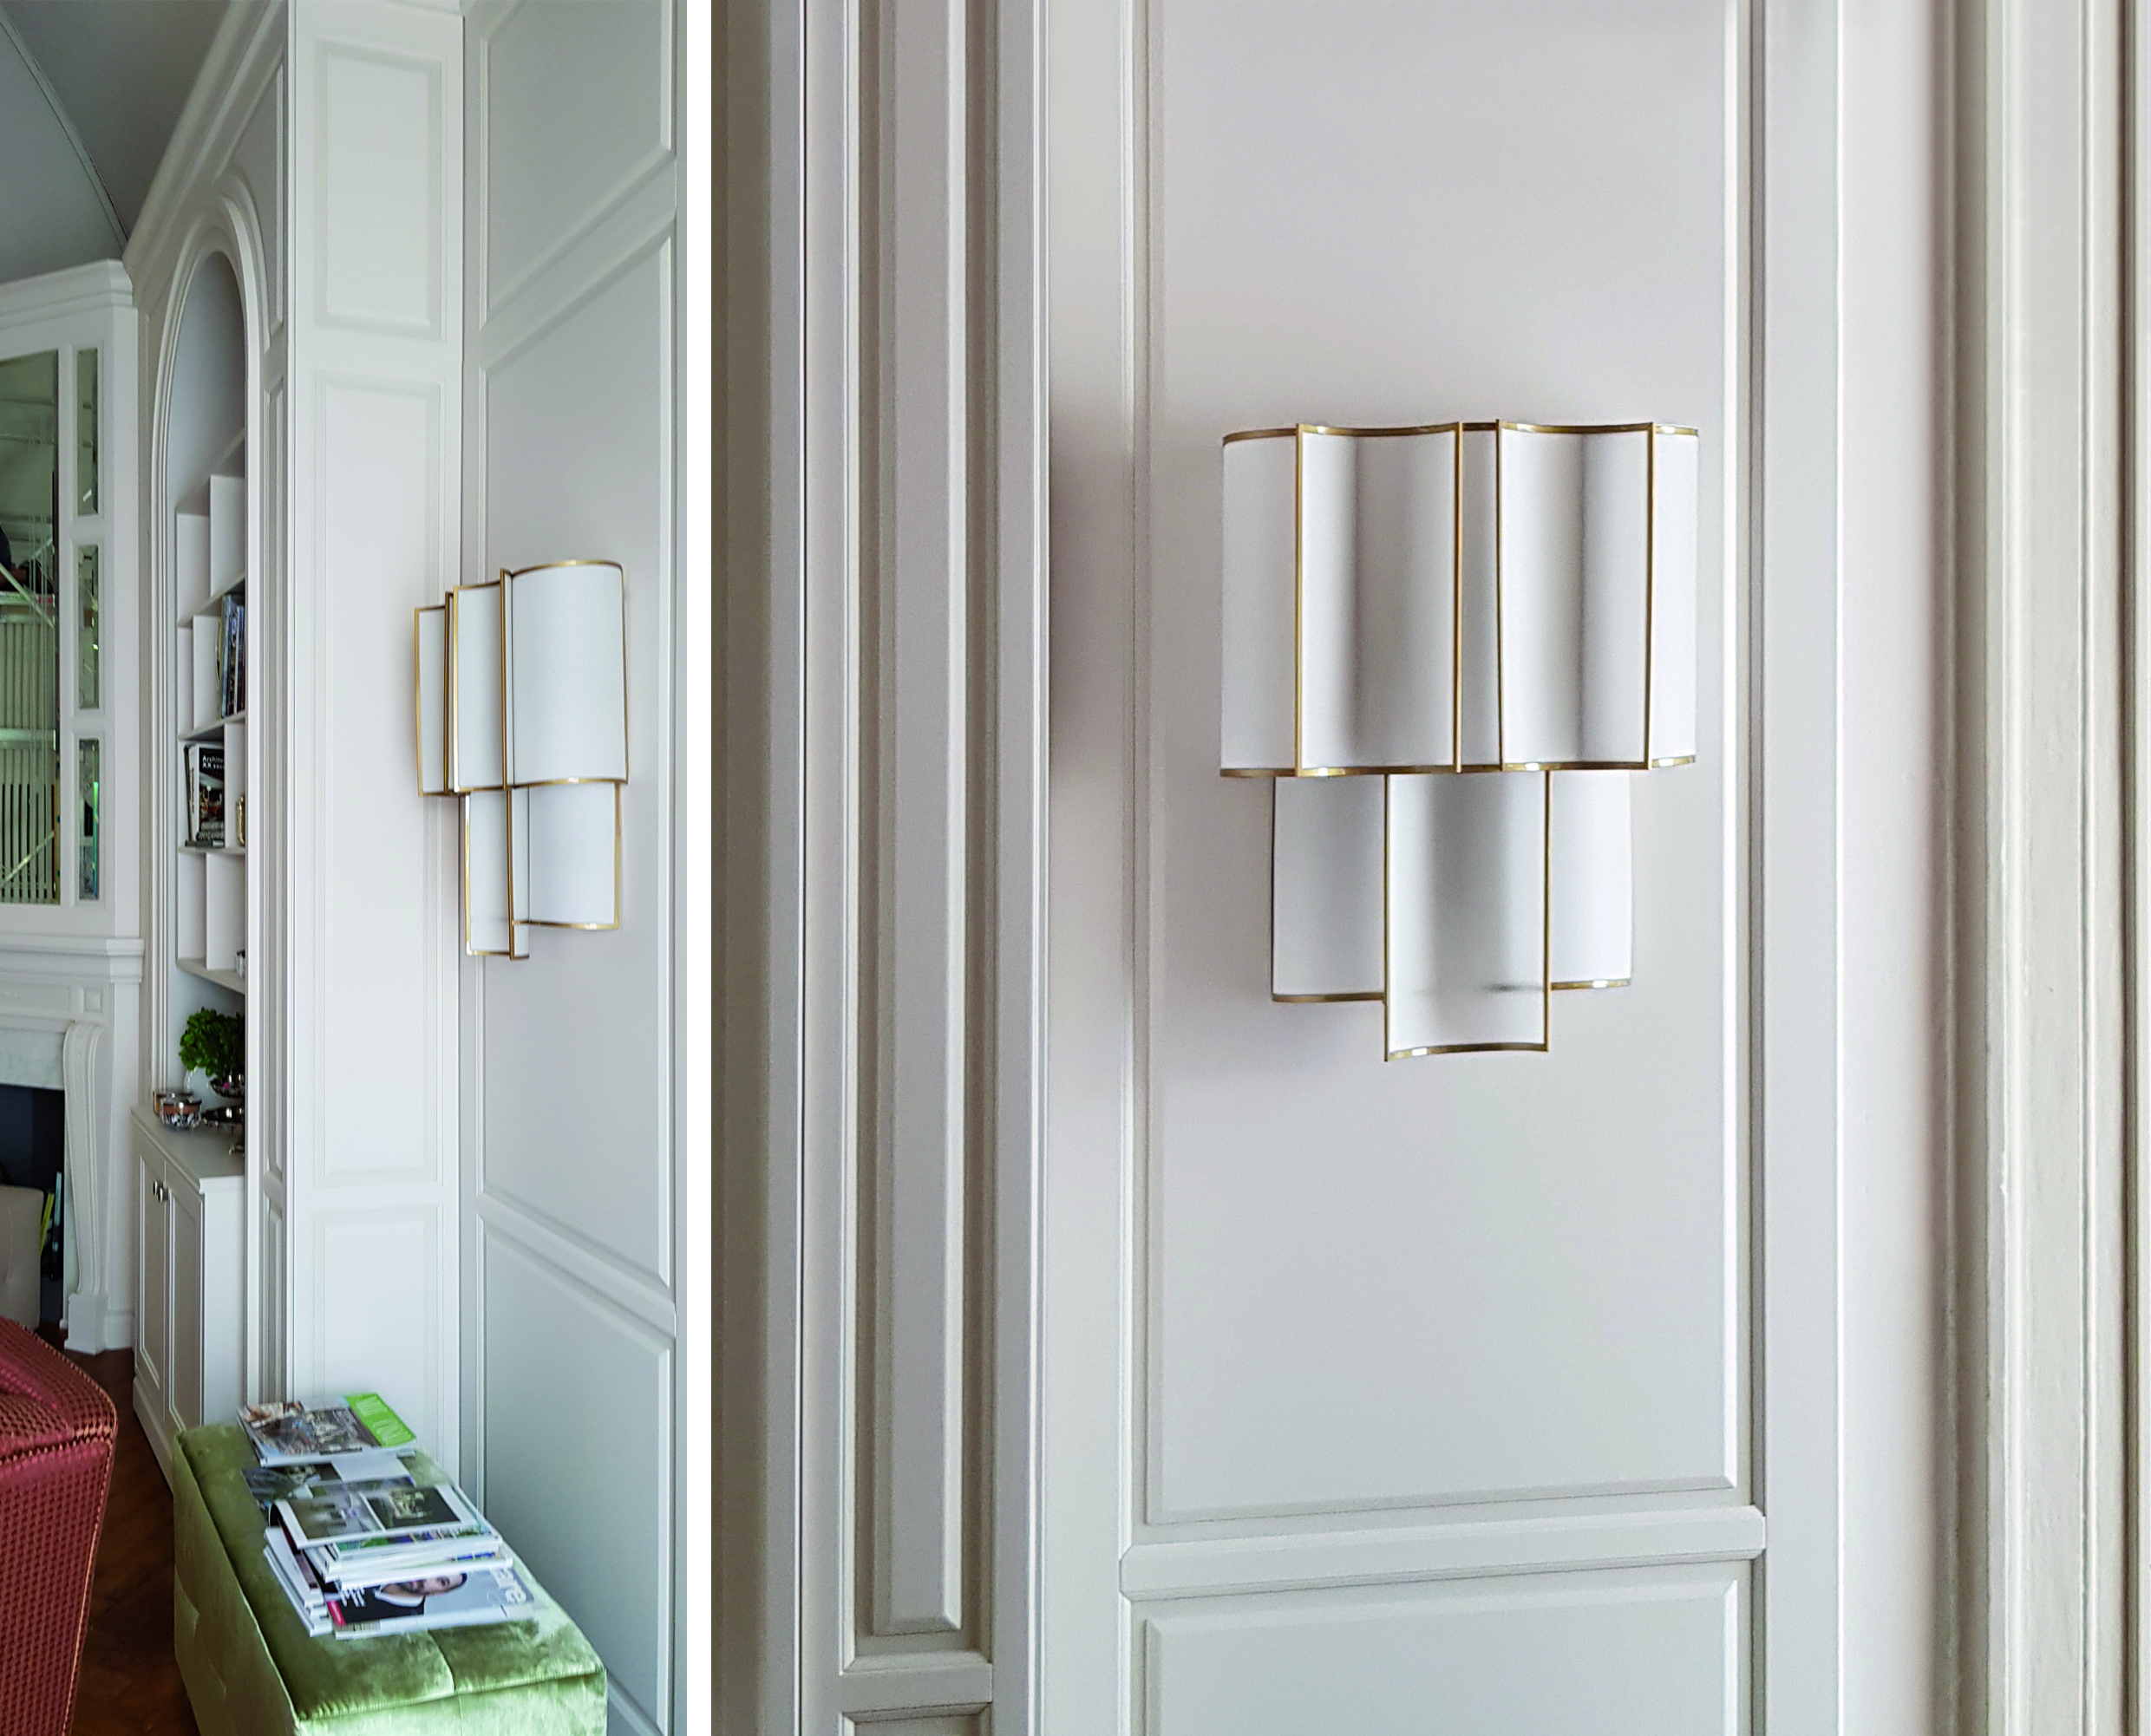 Officina Luce beautiful wall lights will be present during Martini Mobili new showroom launch in the heart of Verona.jpg